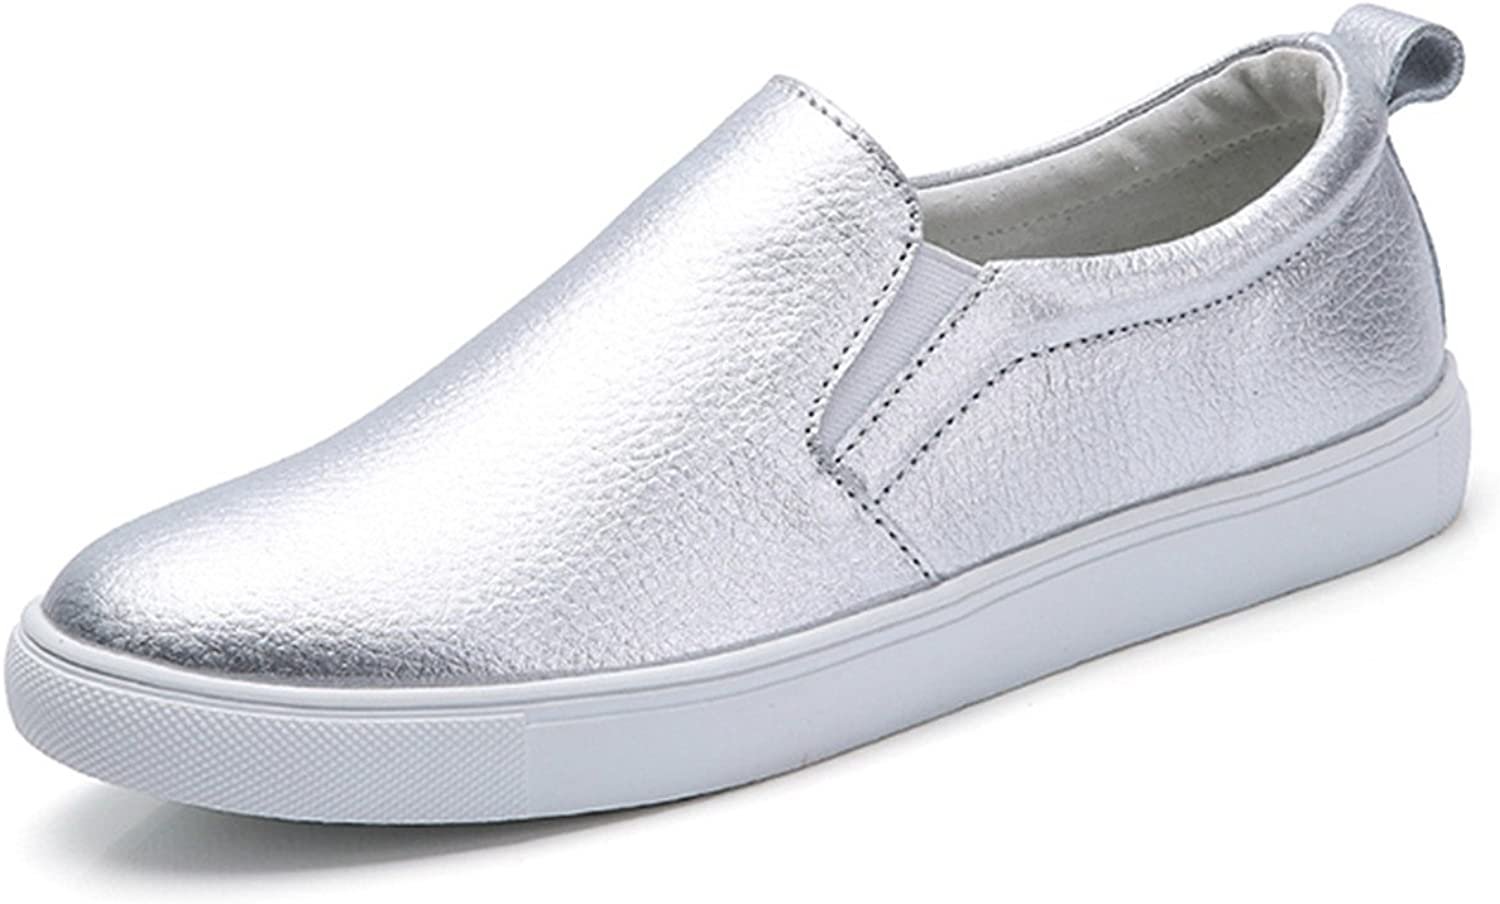 Orcan bluece Women Leather Loafers Fashion Flats Silver Slip On shoes